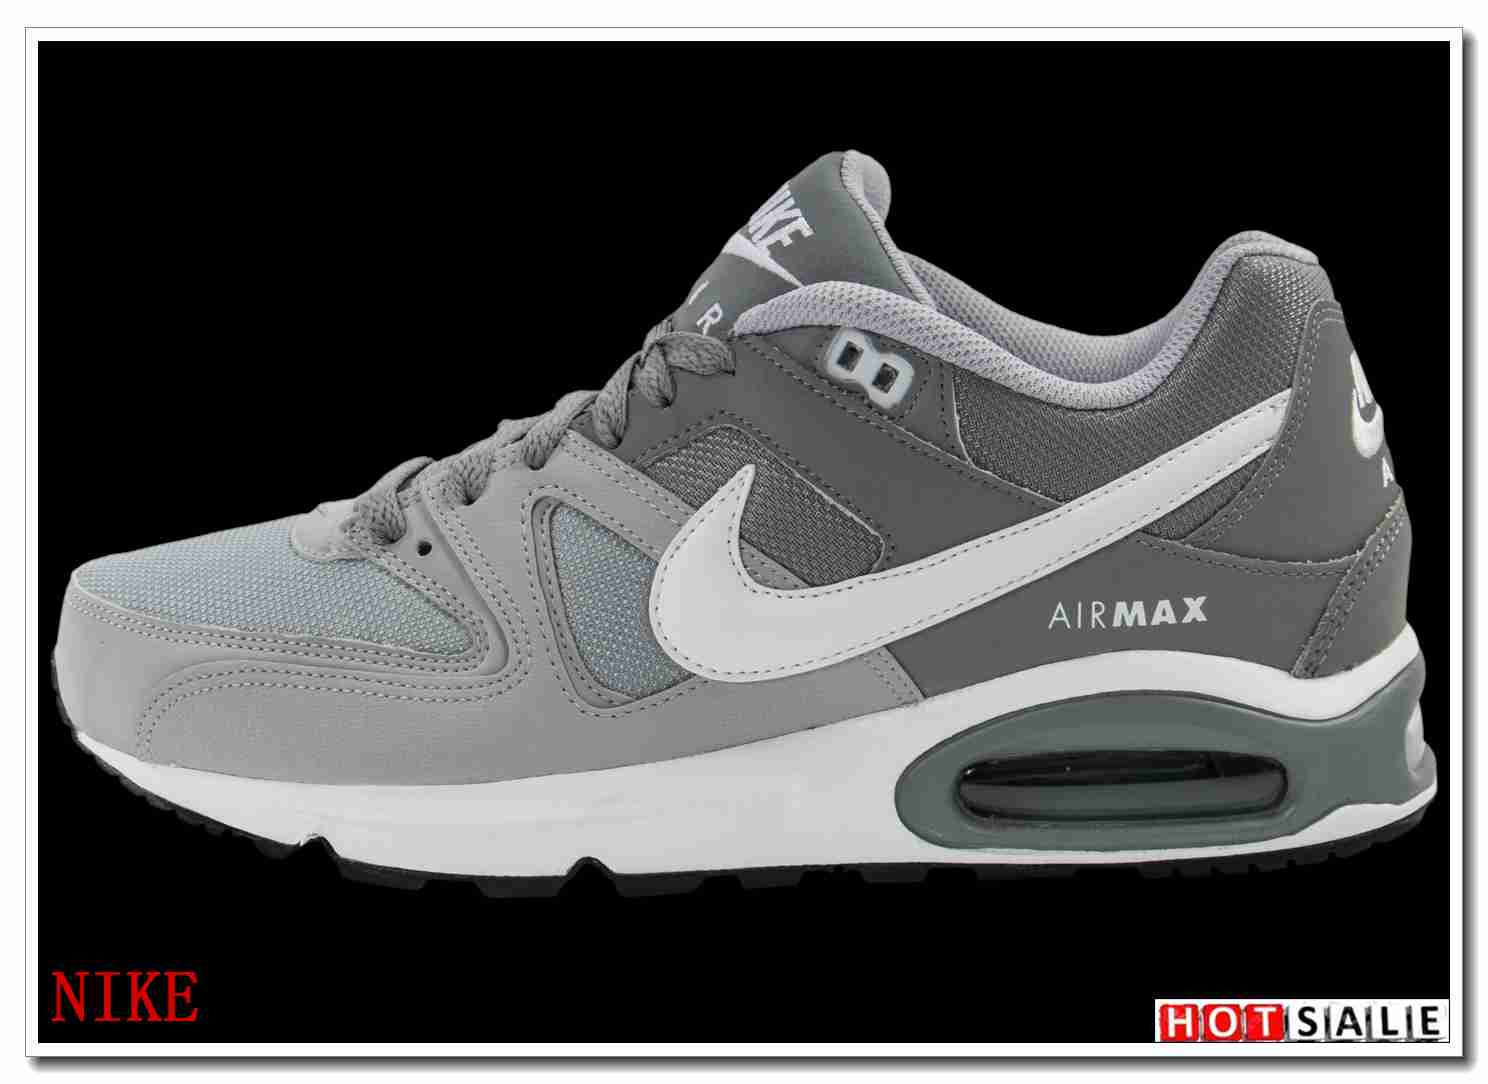 hot sales ed626 1cca1 AZ9255 Neutre 2018 Nouveau style Nike Air Max Command - Homme Chaussures -  Promotions Vente -